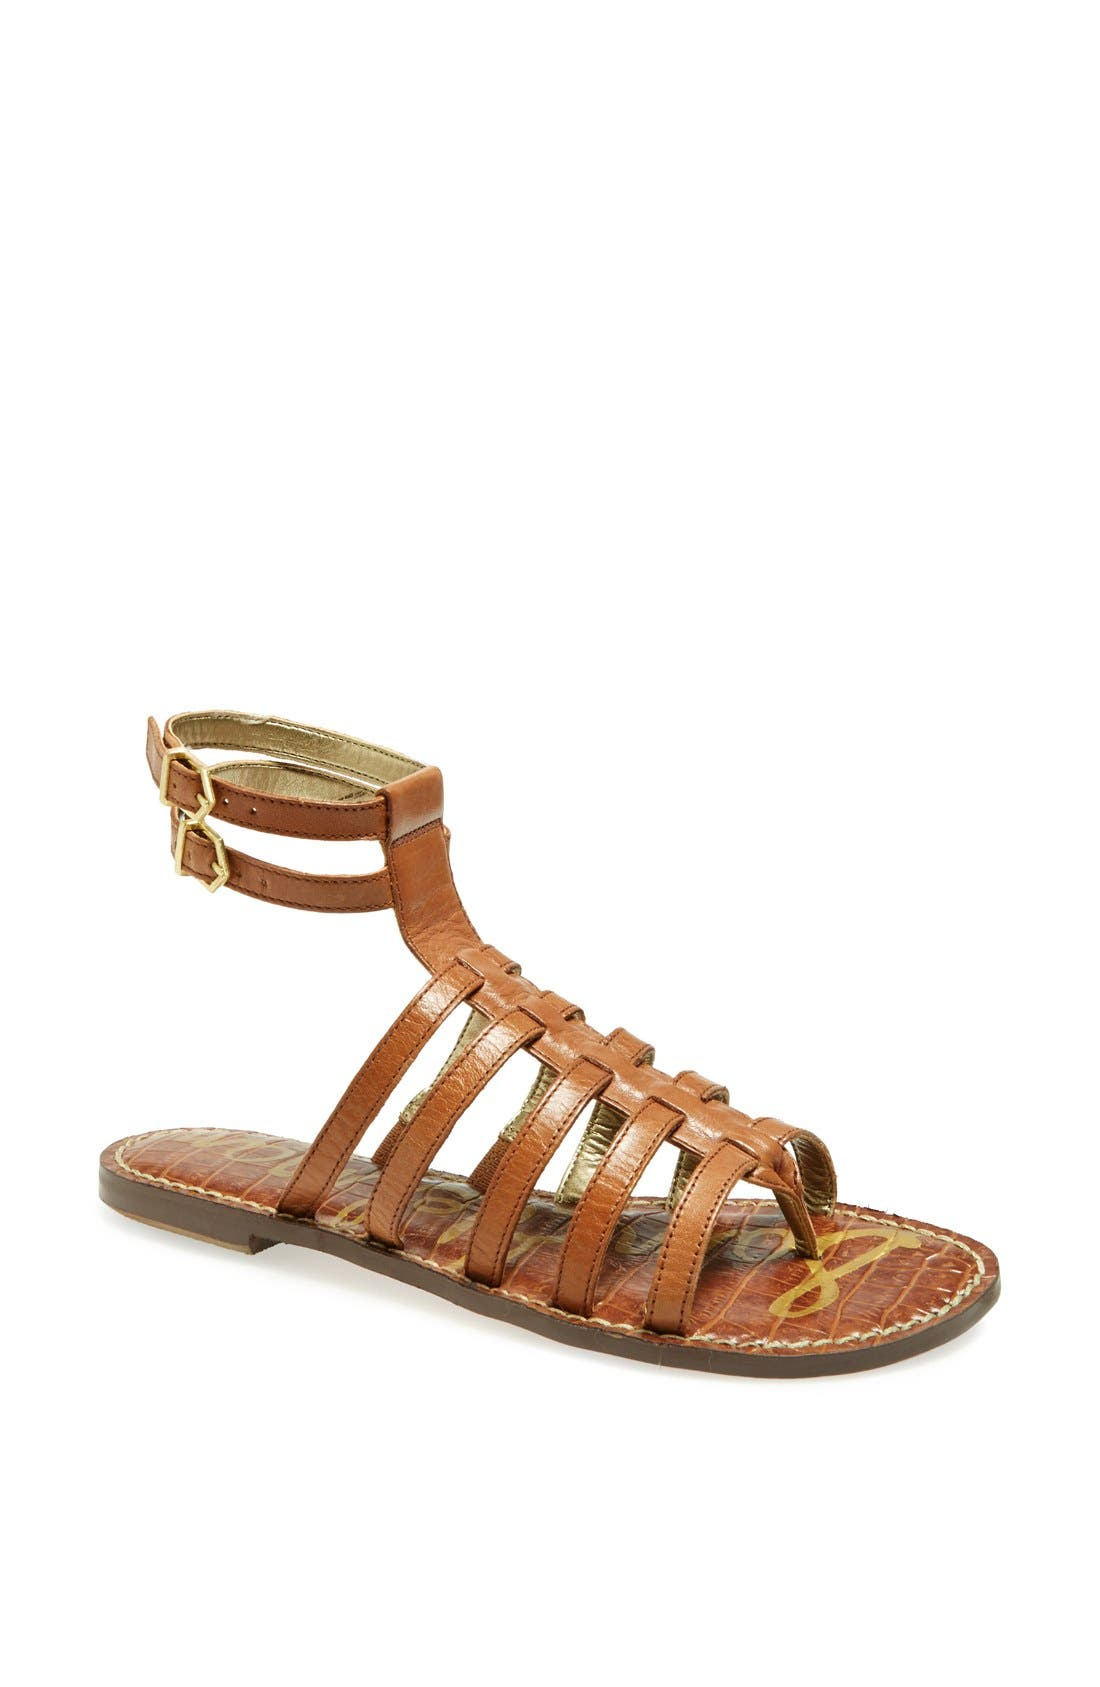 'Gilda' Sandal,                         Main,                         color, SADDLE LEATHER